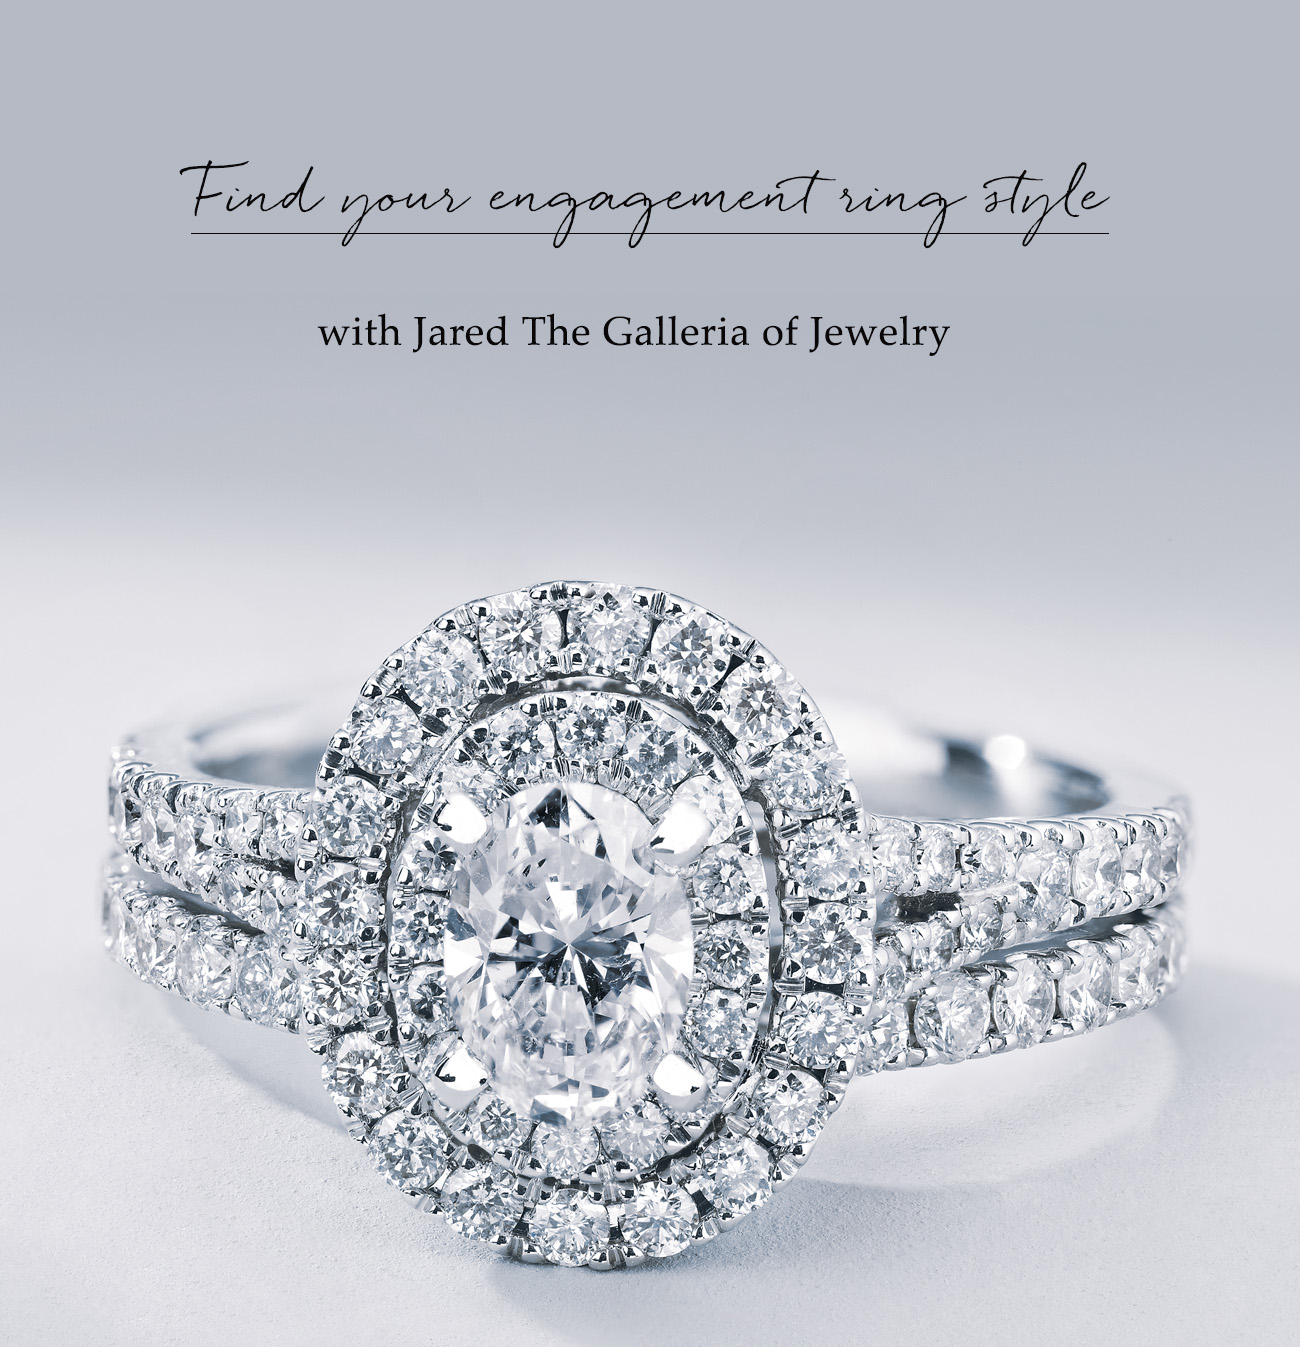 Find Your Engagement Ring Style with Jared